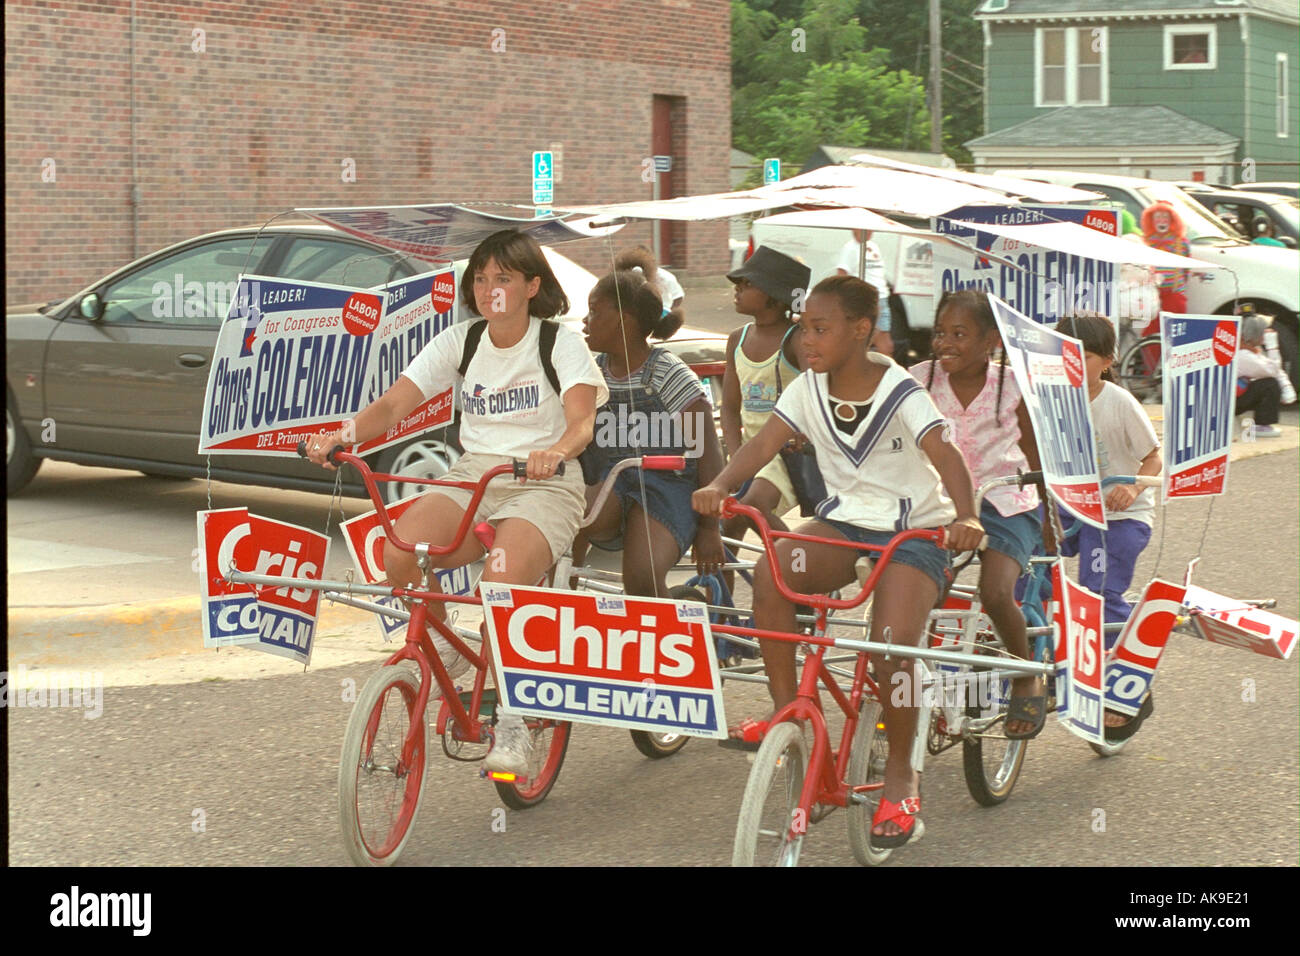 Political campaigners age 12 and 28 riding bikes in the